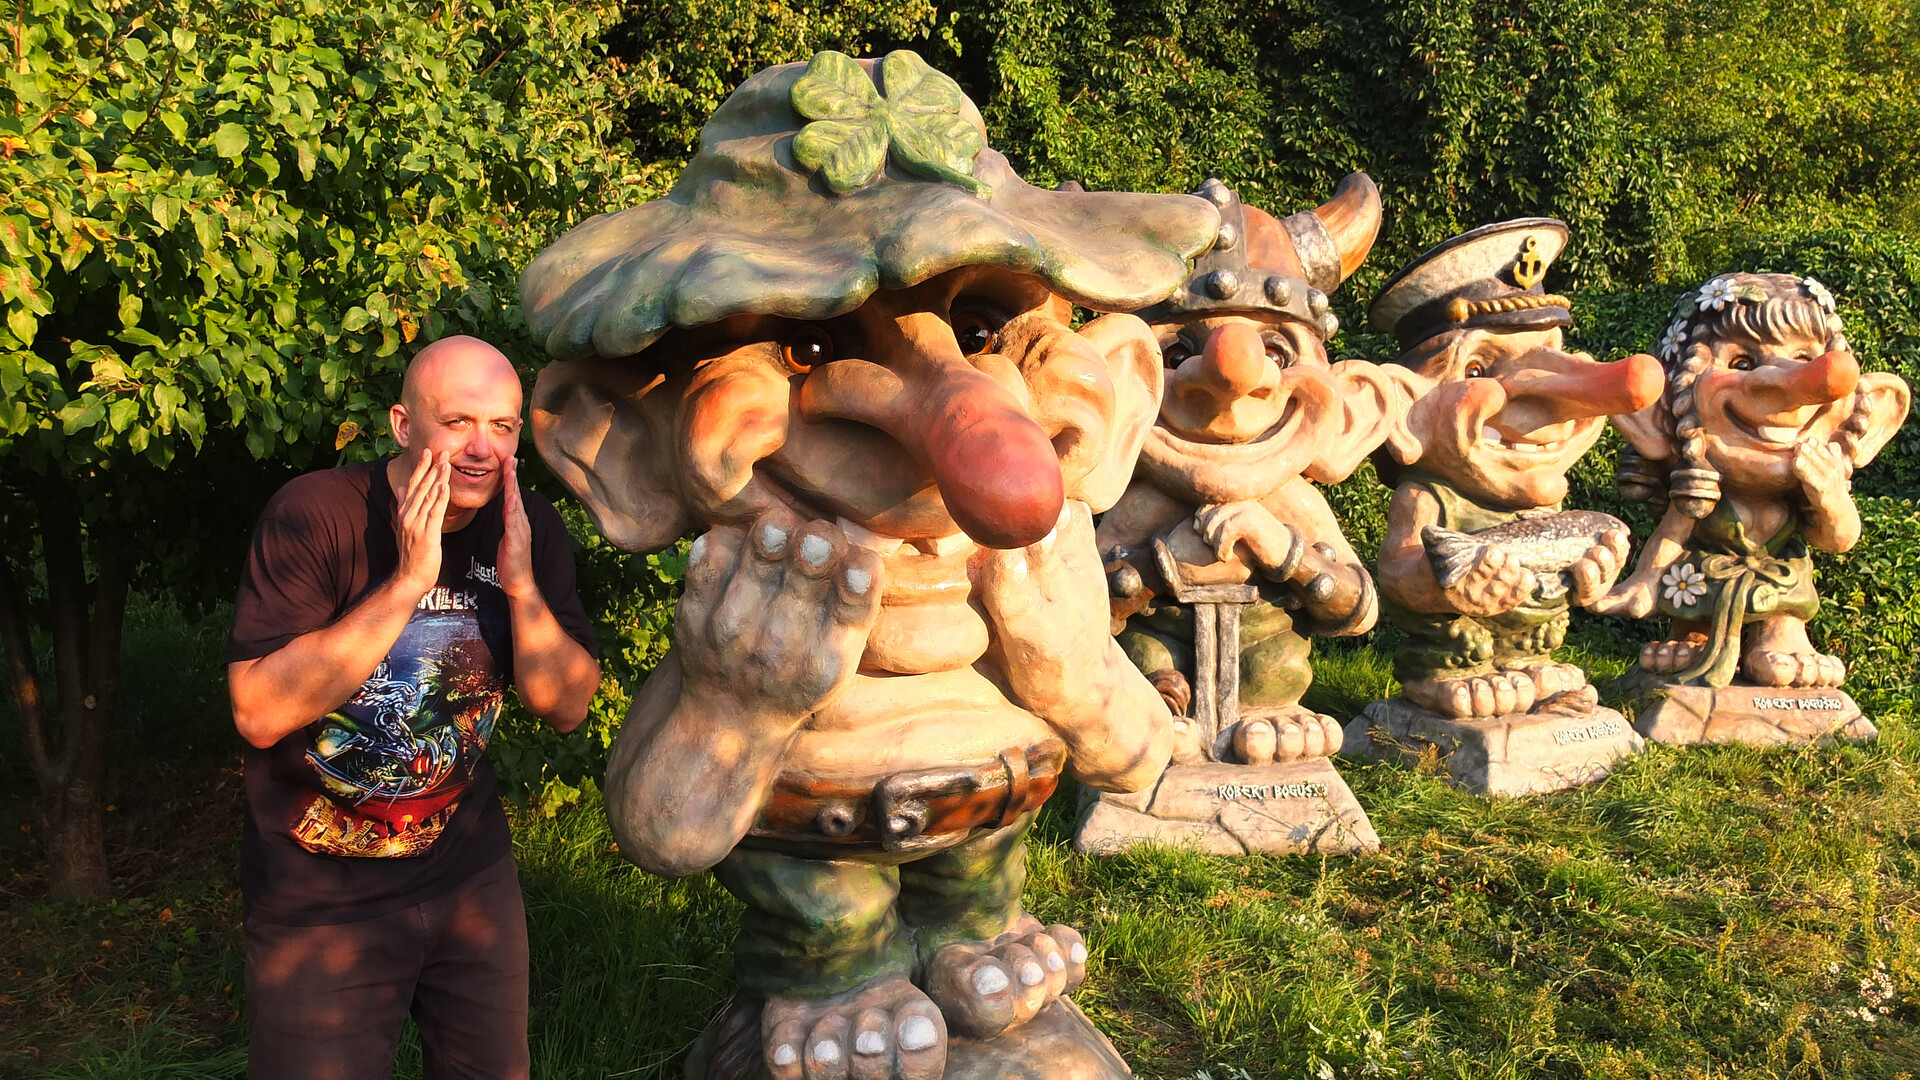 Artstation Scandinavian Trolls Norwegian Troll Norway Fiberglass Sculptures Figures Statues Monuments Robert Bogusko